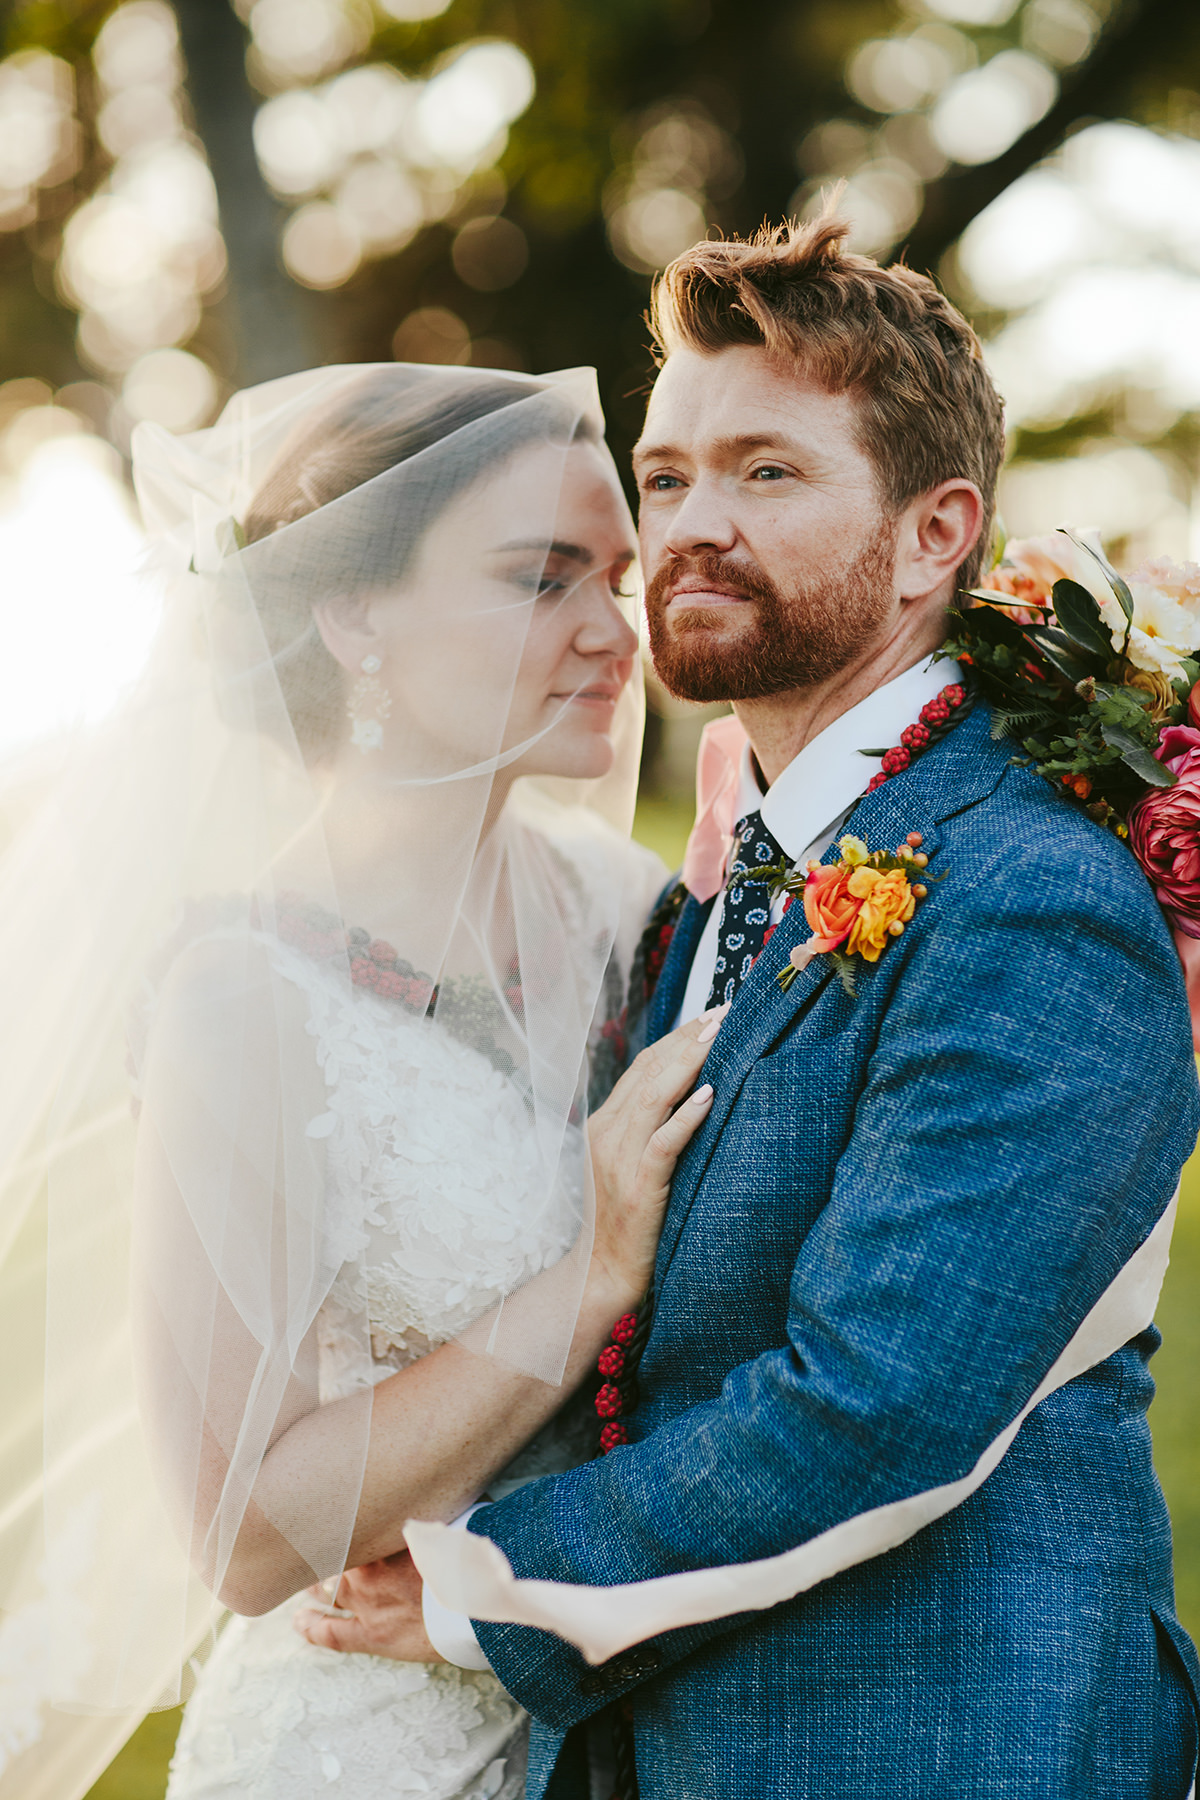 a veiled bride and her groom at their Maui wedding